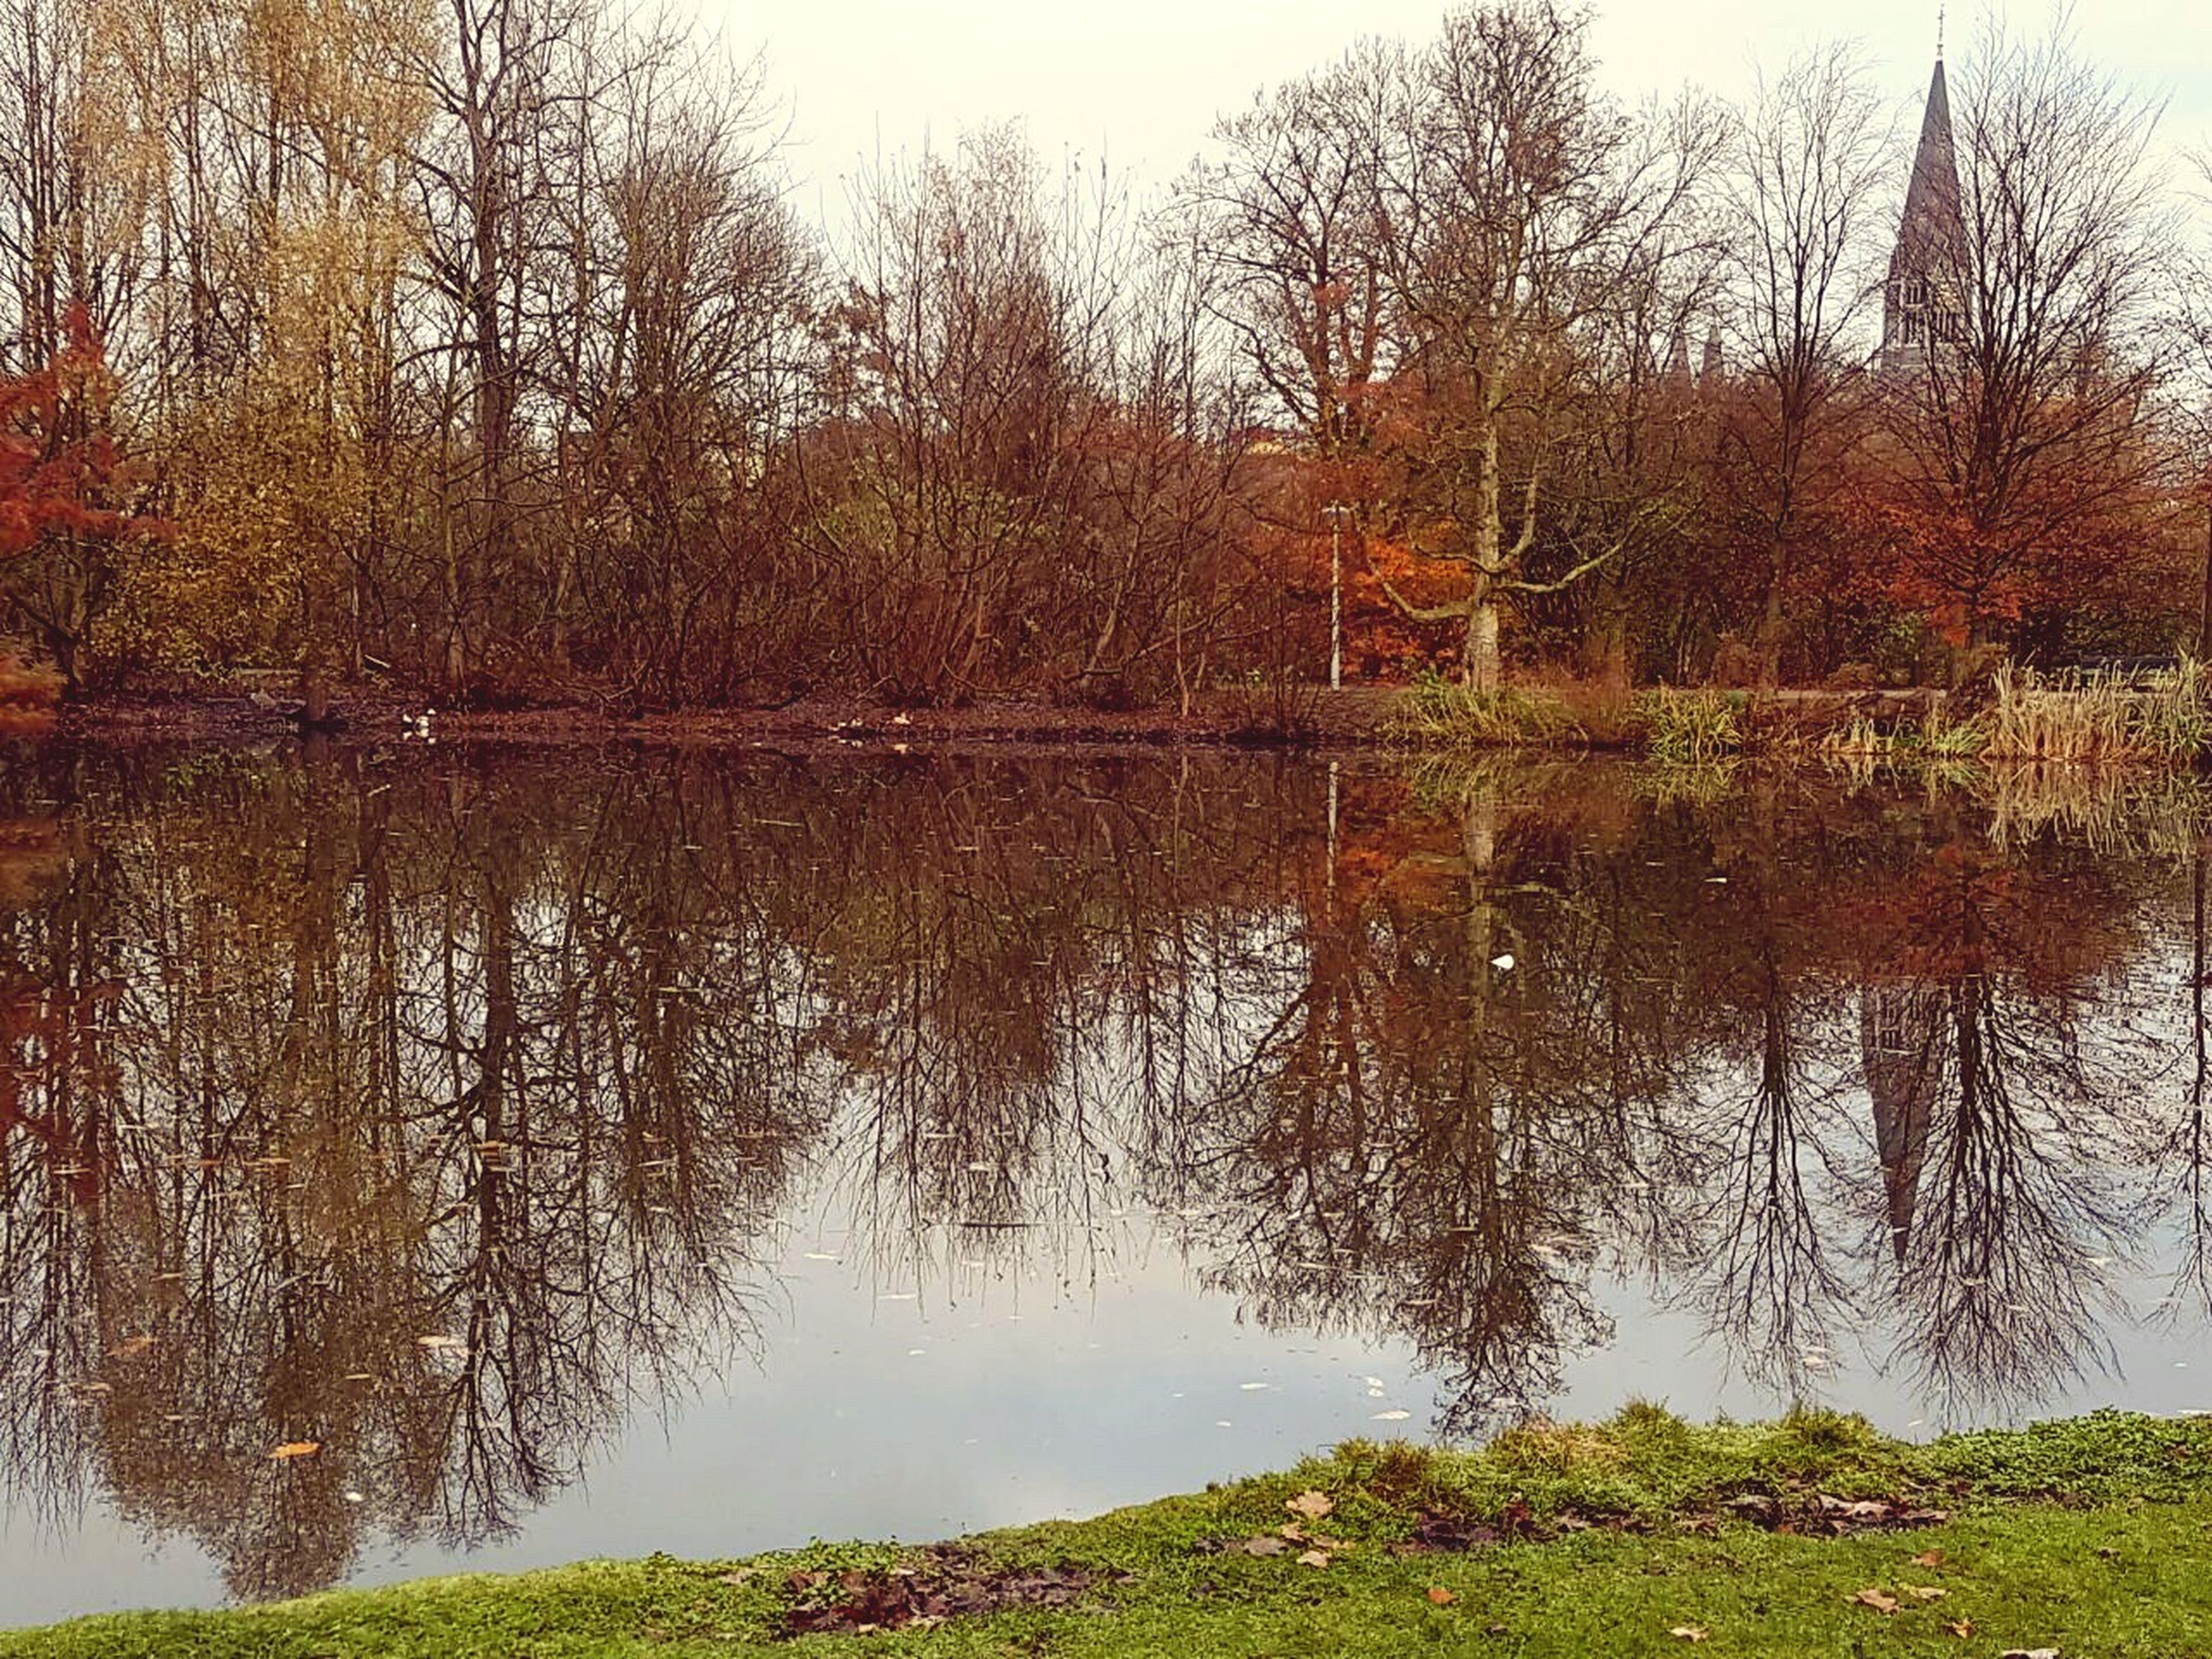 tree, reflection, nature, water, lake, no people, day, outdoors, scenics, beauty in nature, sky